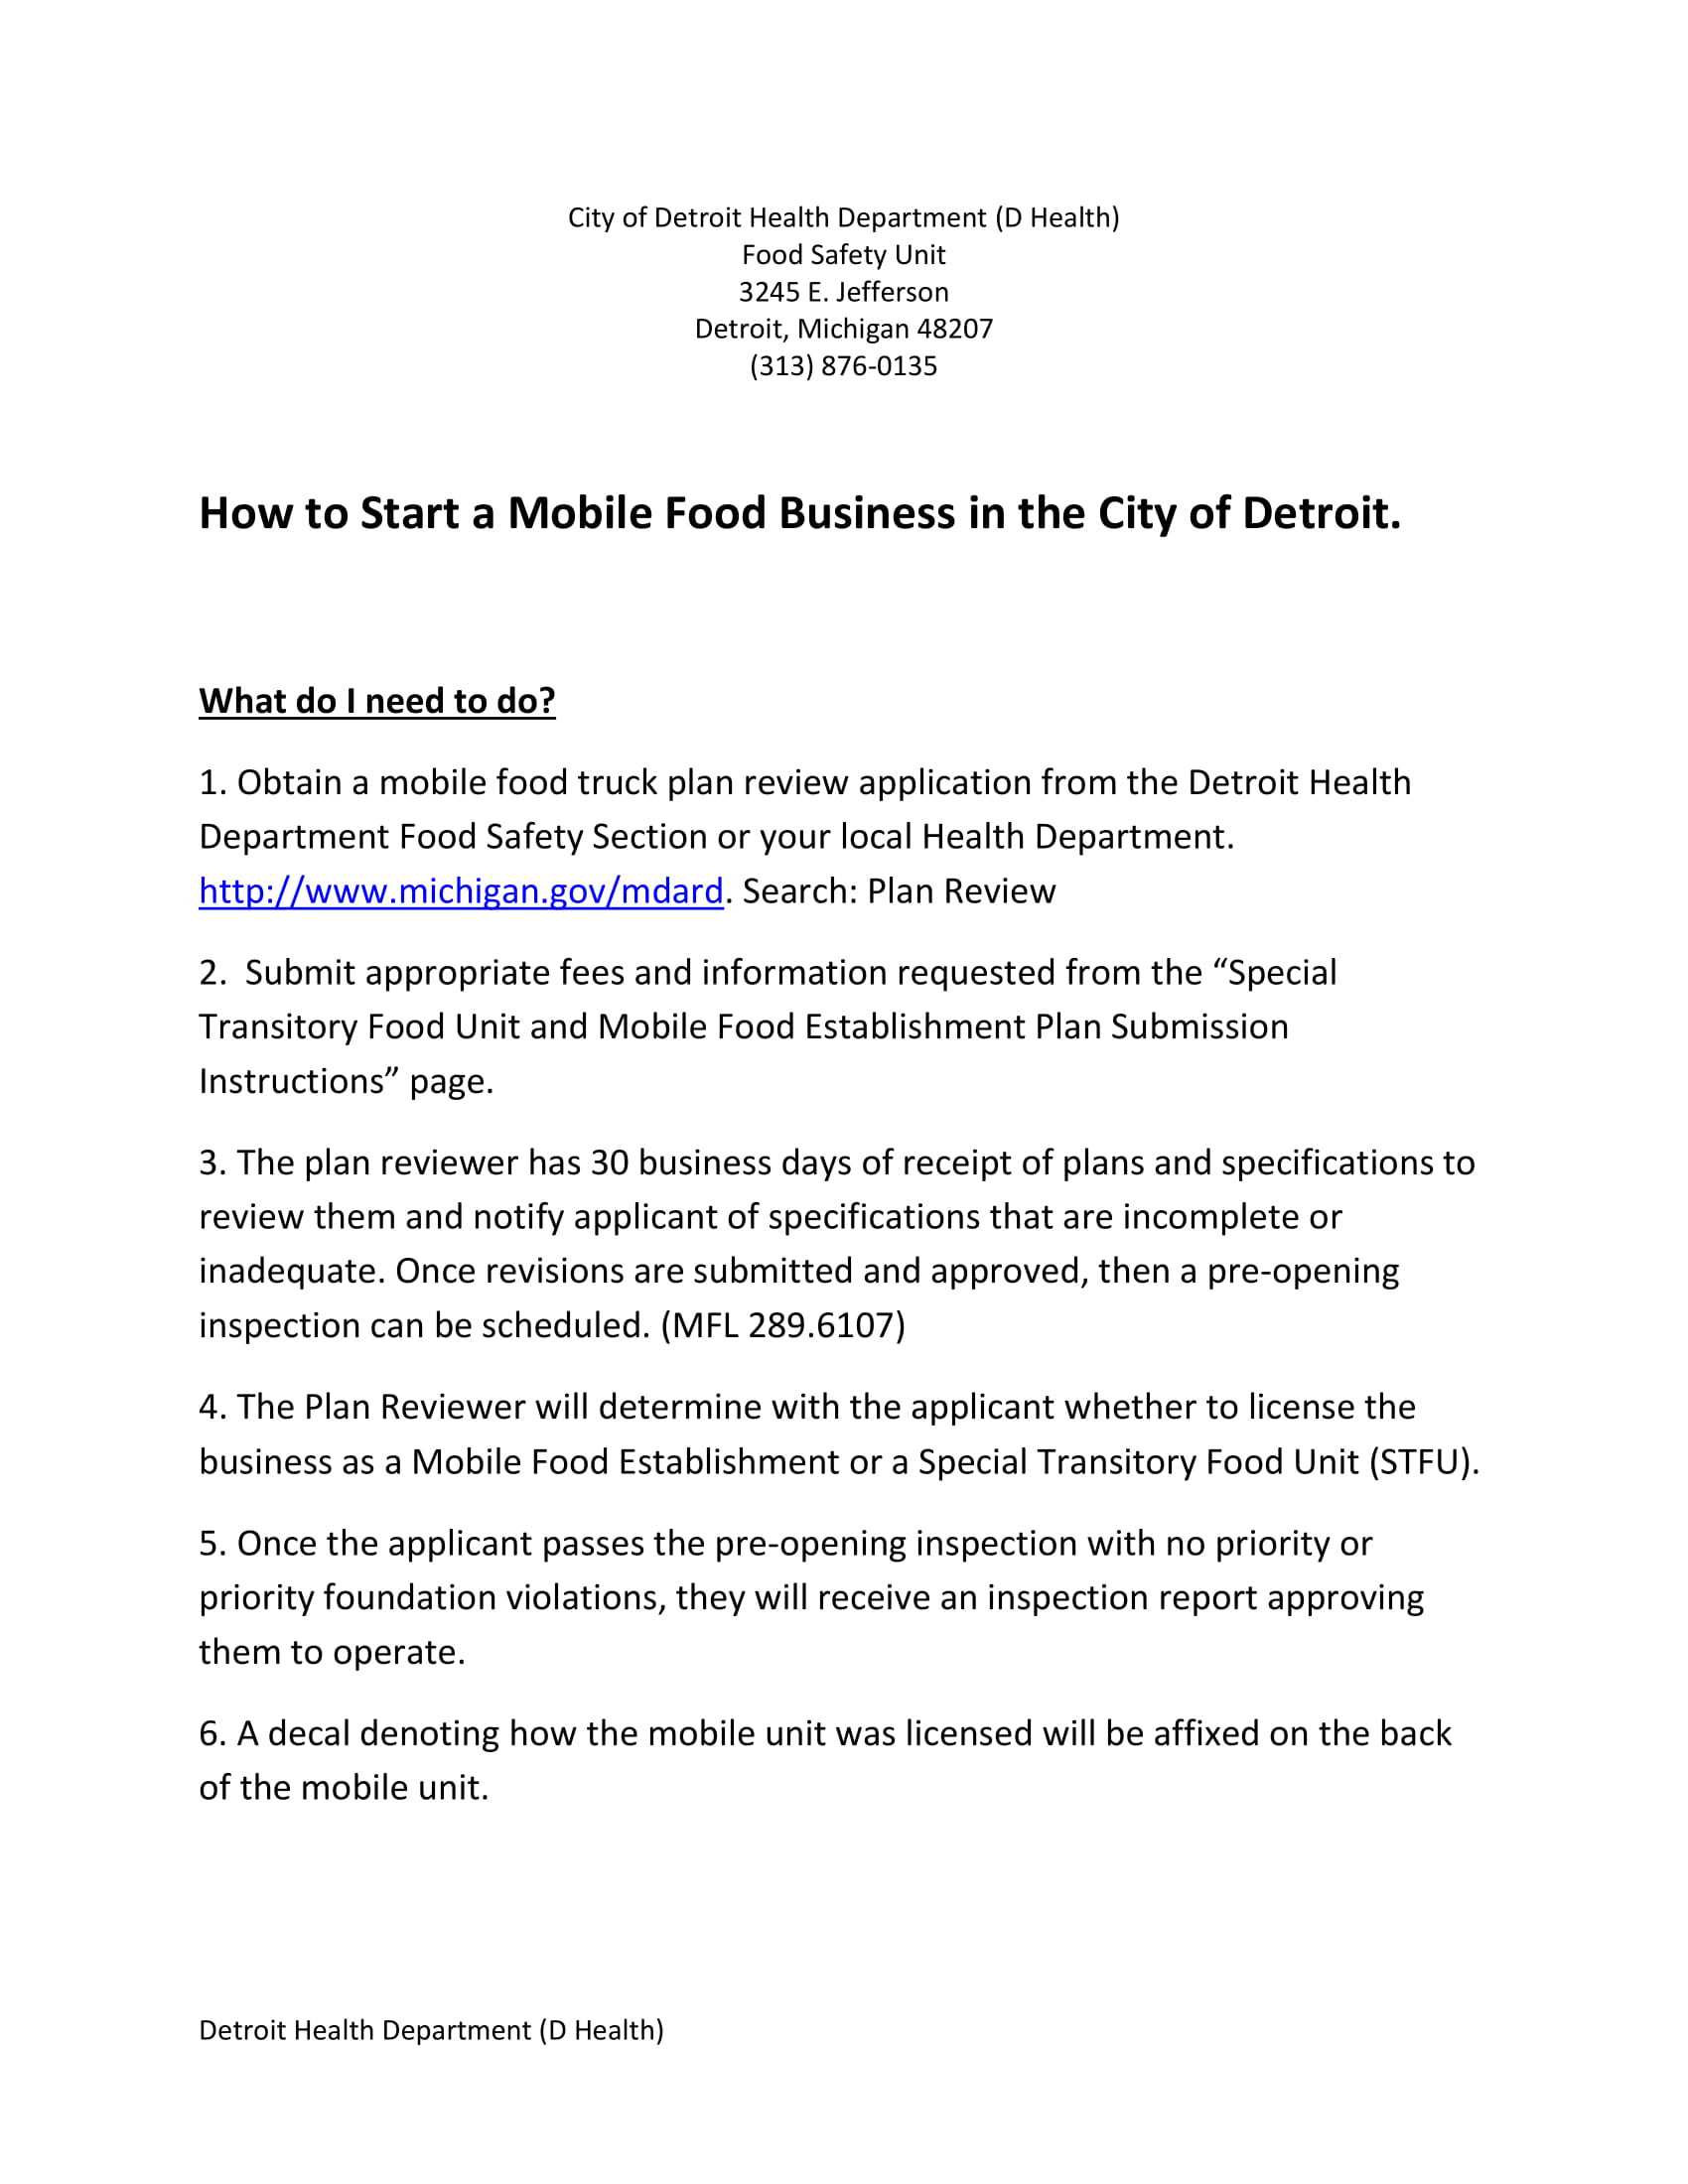 mobile catering business plan regulations example